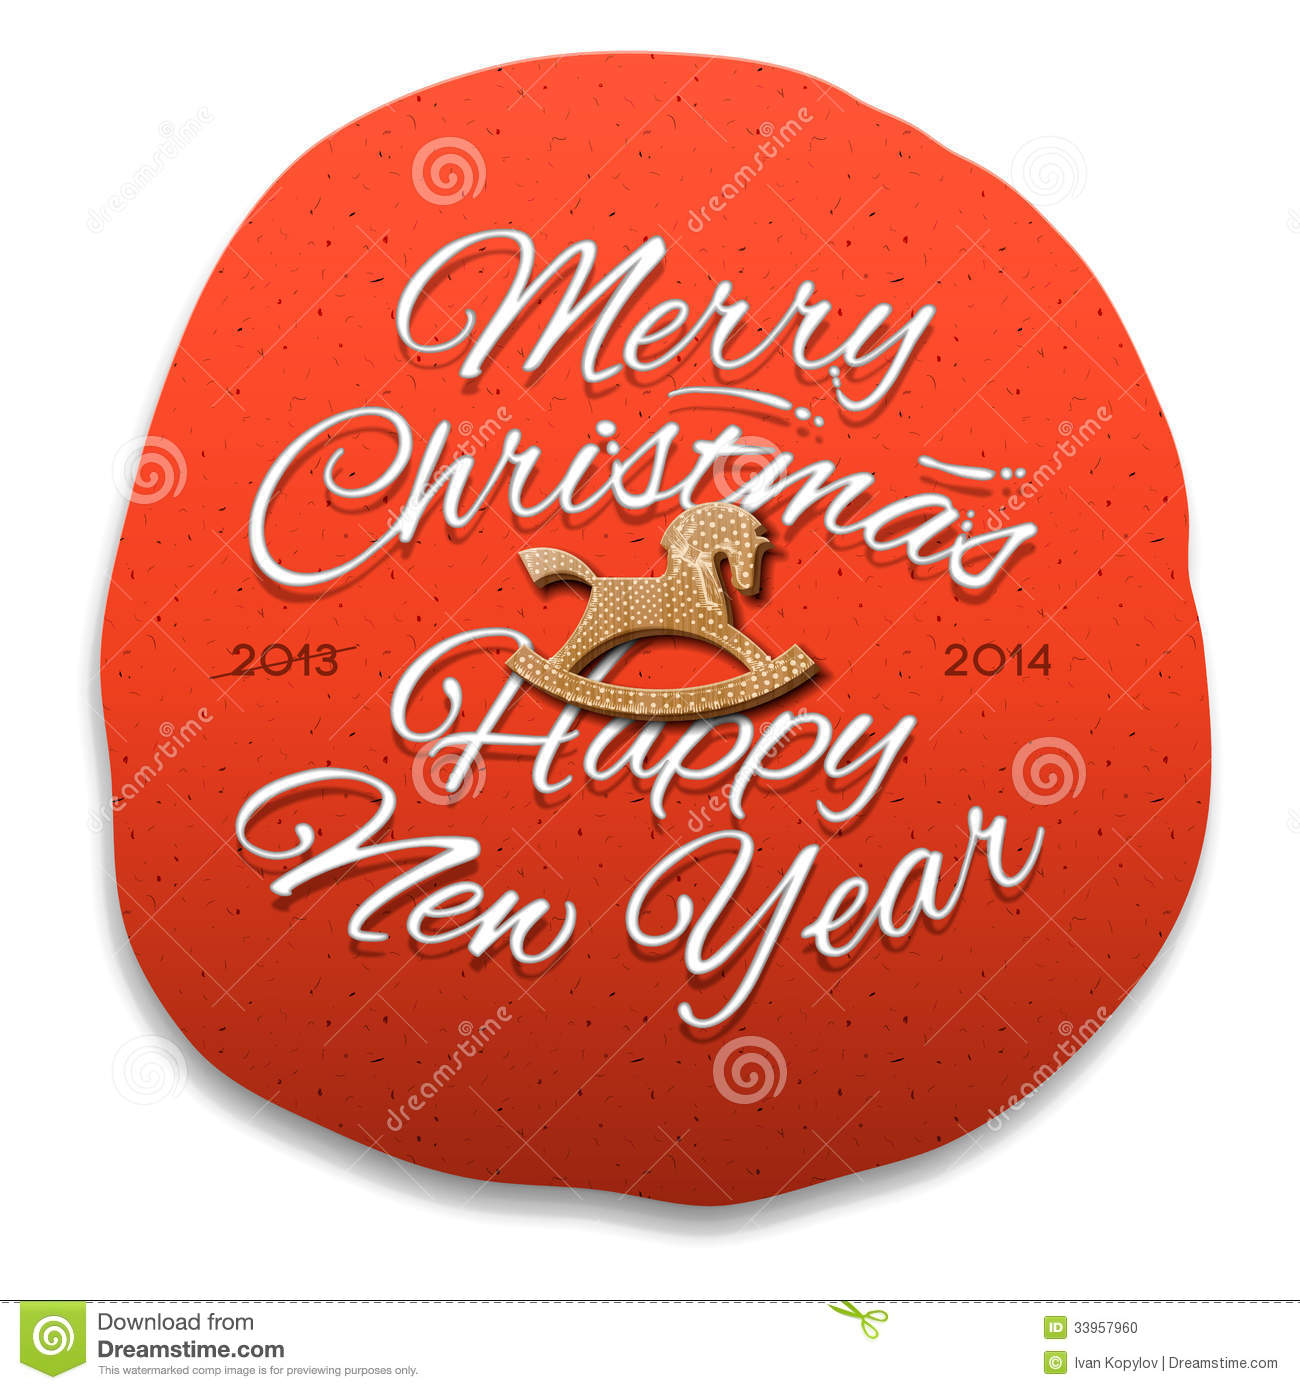 Happy new year 2014 greeting card stock illustration illustration download comp m4hsunfo